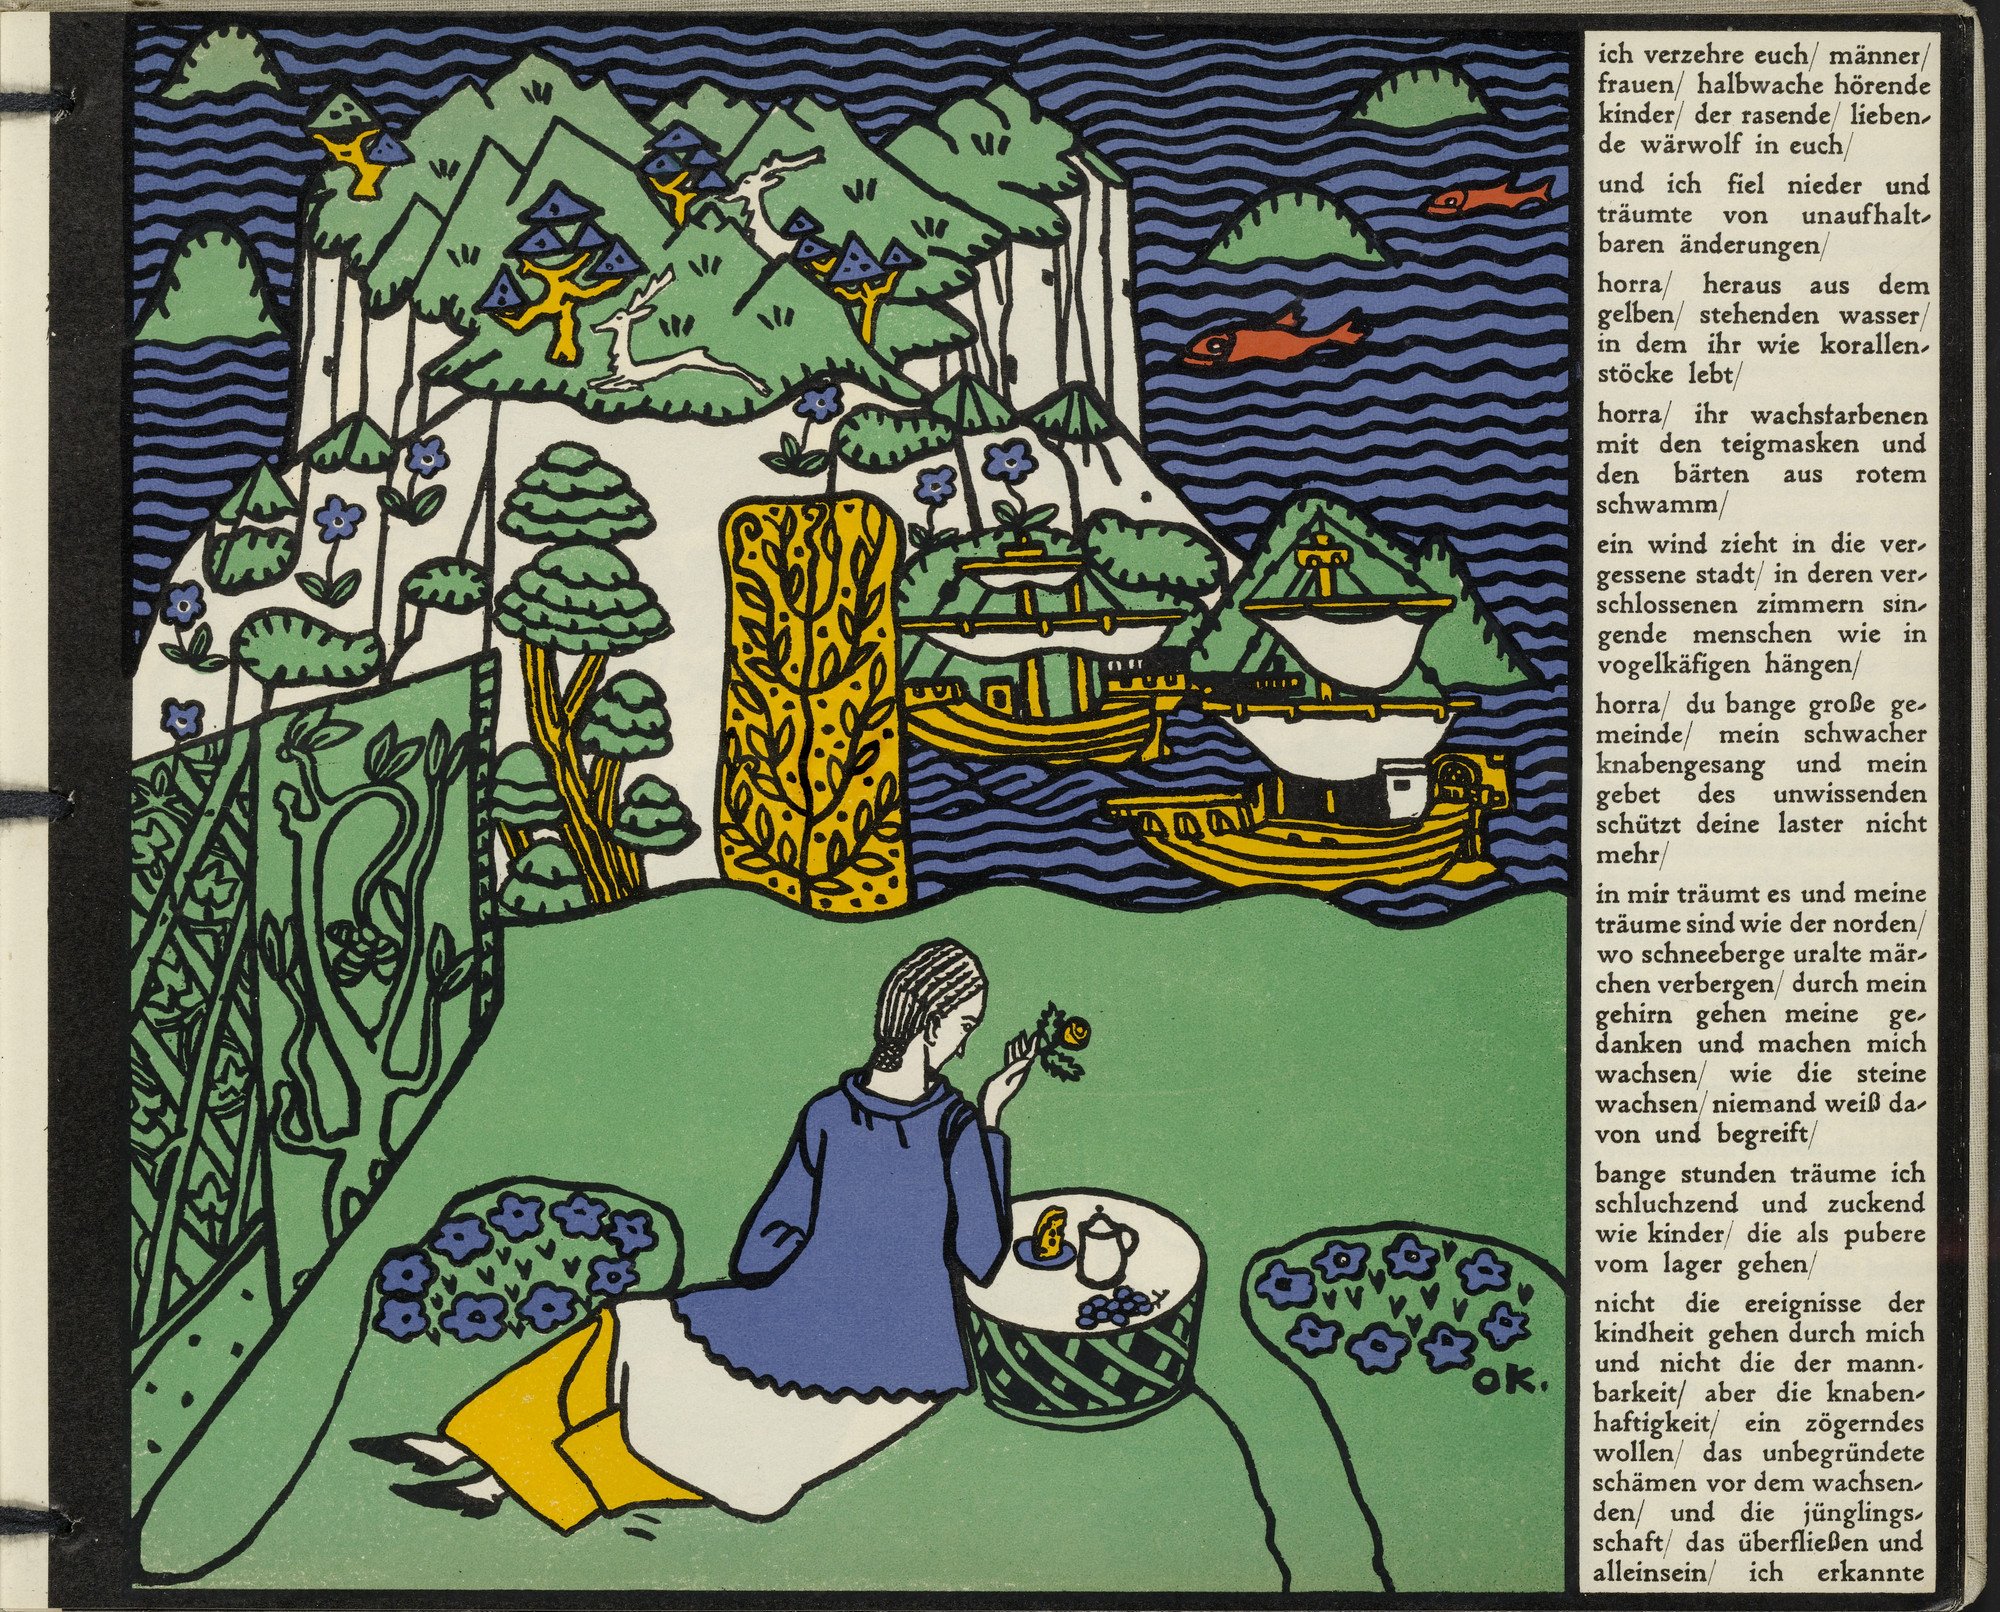 Oskar Kokoschka. _The Distant Island (Die ferne Insel) _ (in-text plate, folio 6) from Die träumenden Knaben (The Dreaming Boys). 1917 (executed 1907-08)